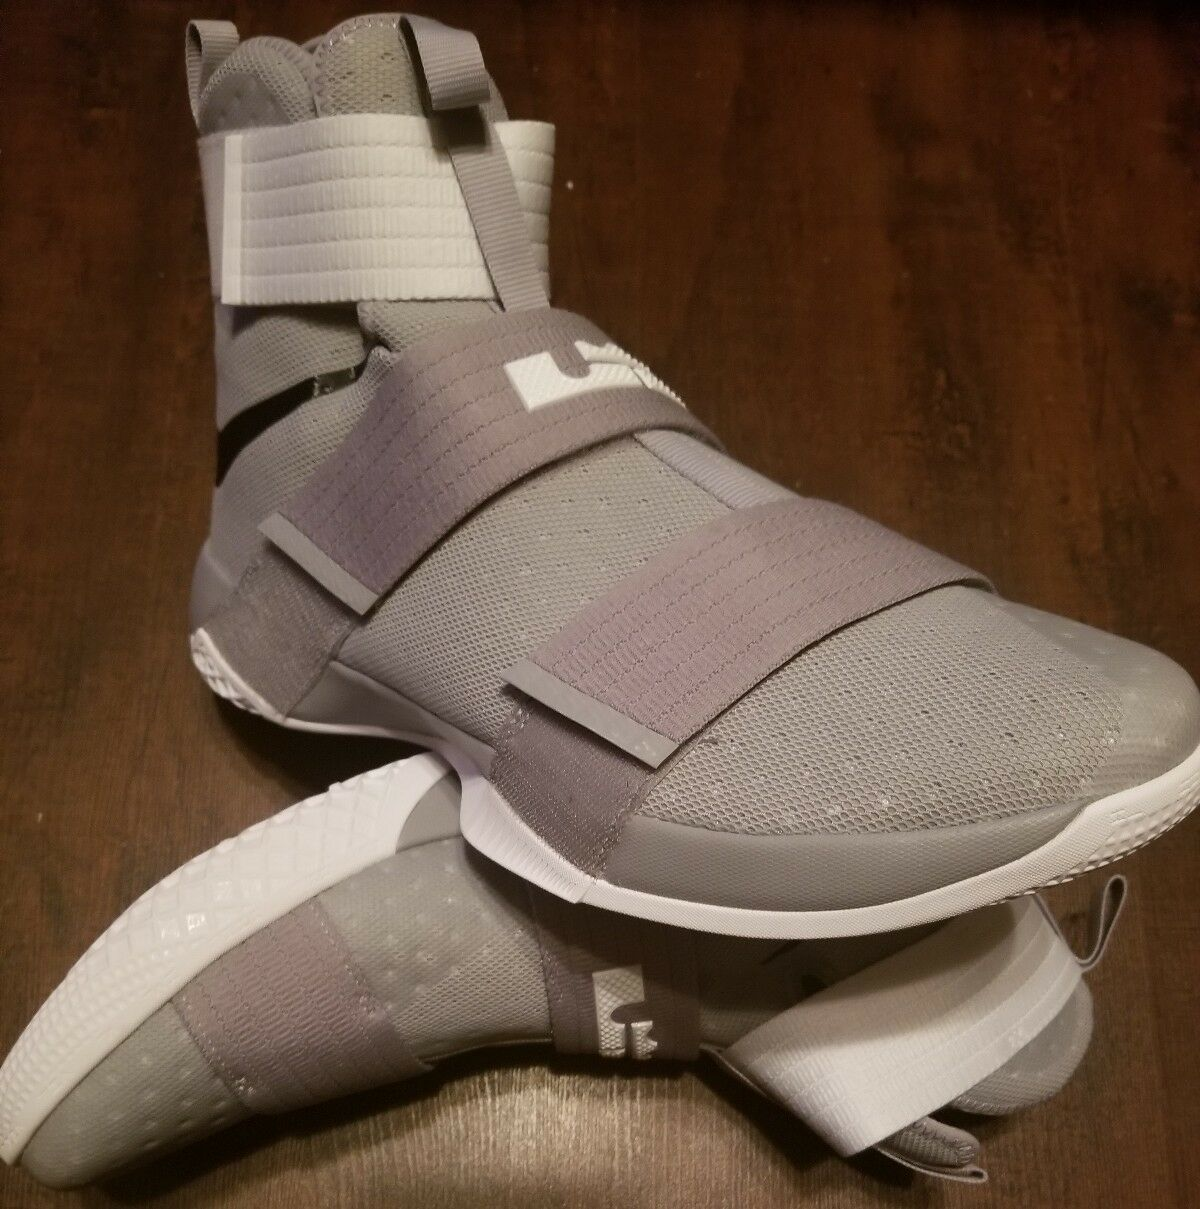 New shoes for men and women, limited time discount New Nike Lebron LBJ Soldier 10 TB Mens Comfortable